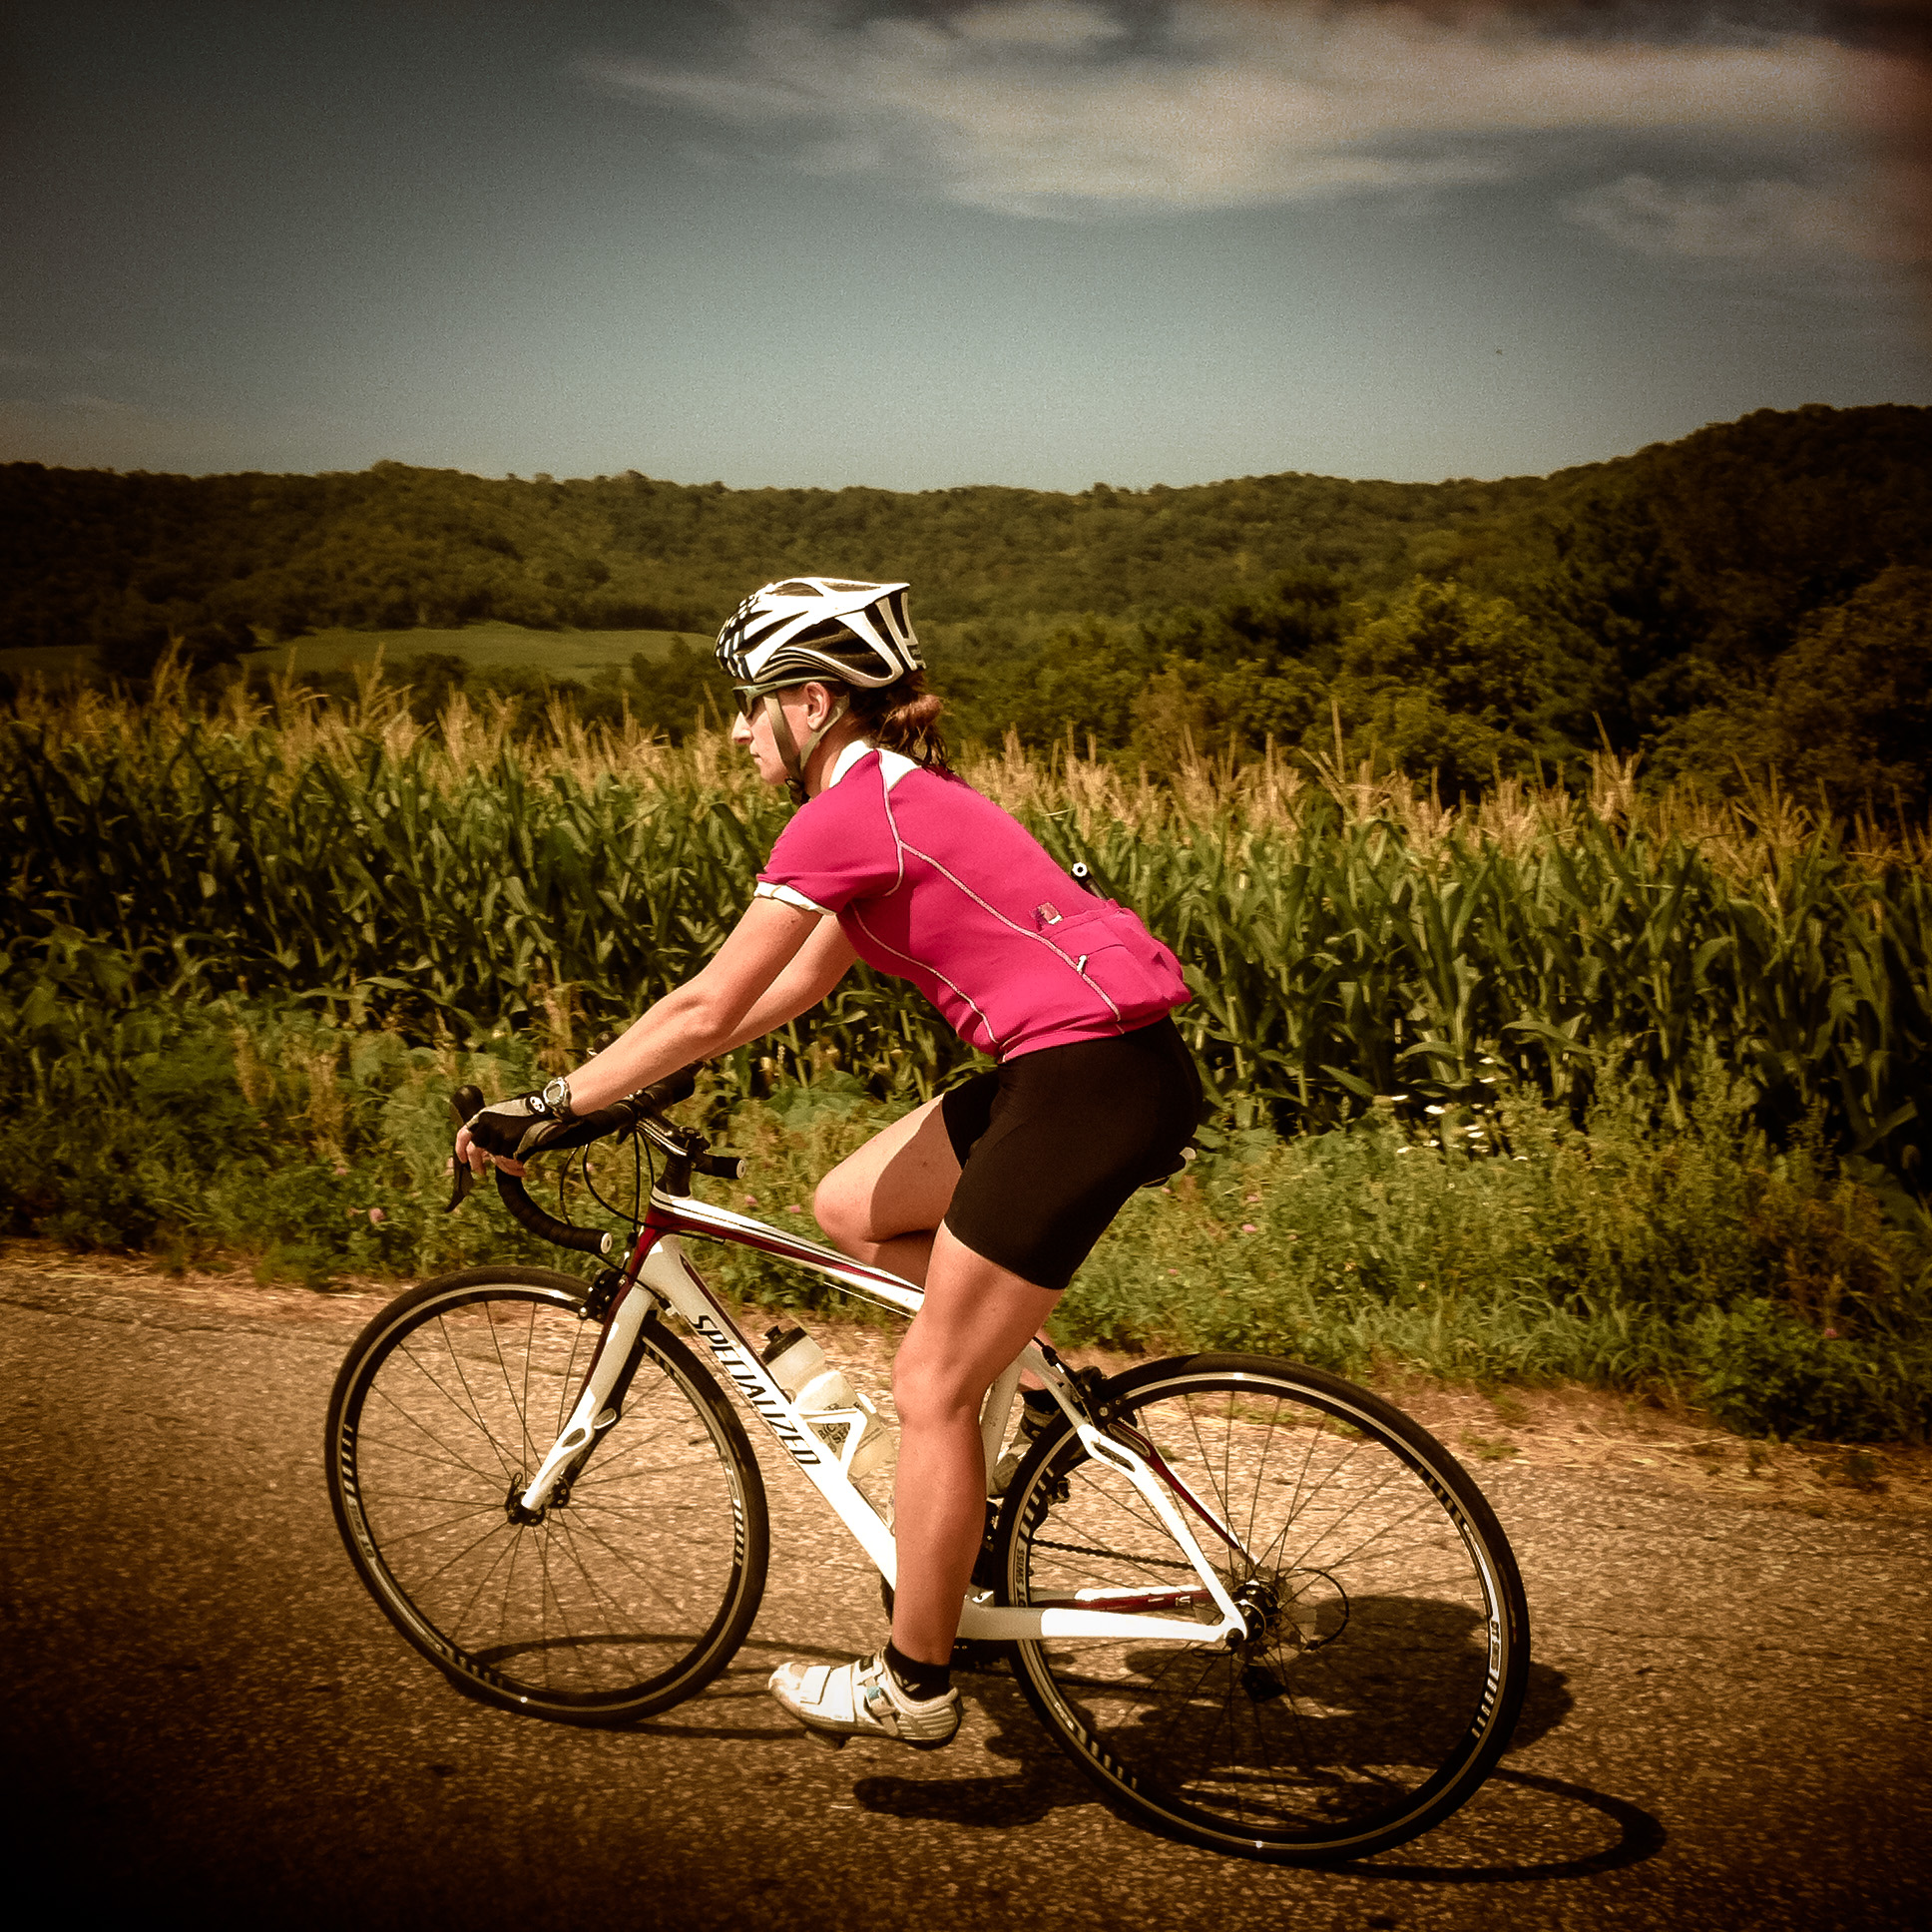 Trempealeau County Bicycling